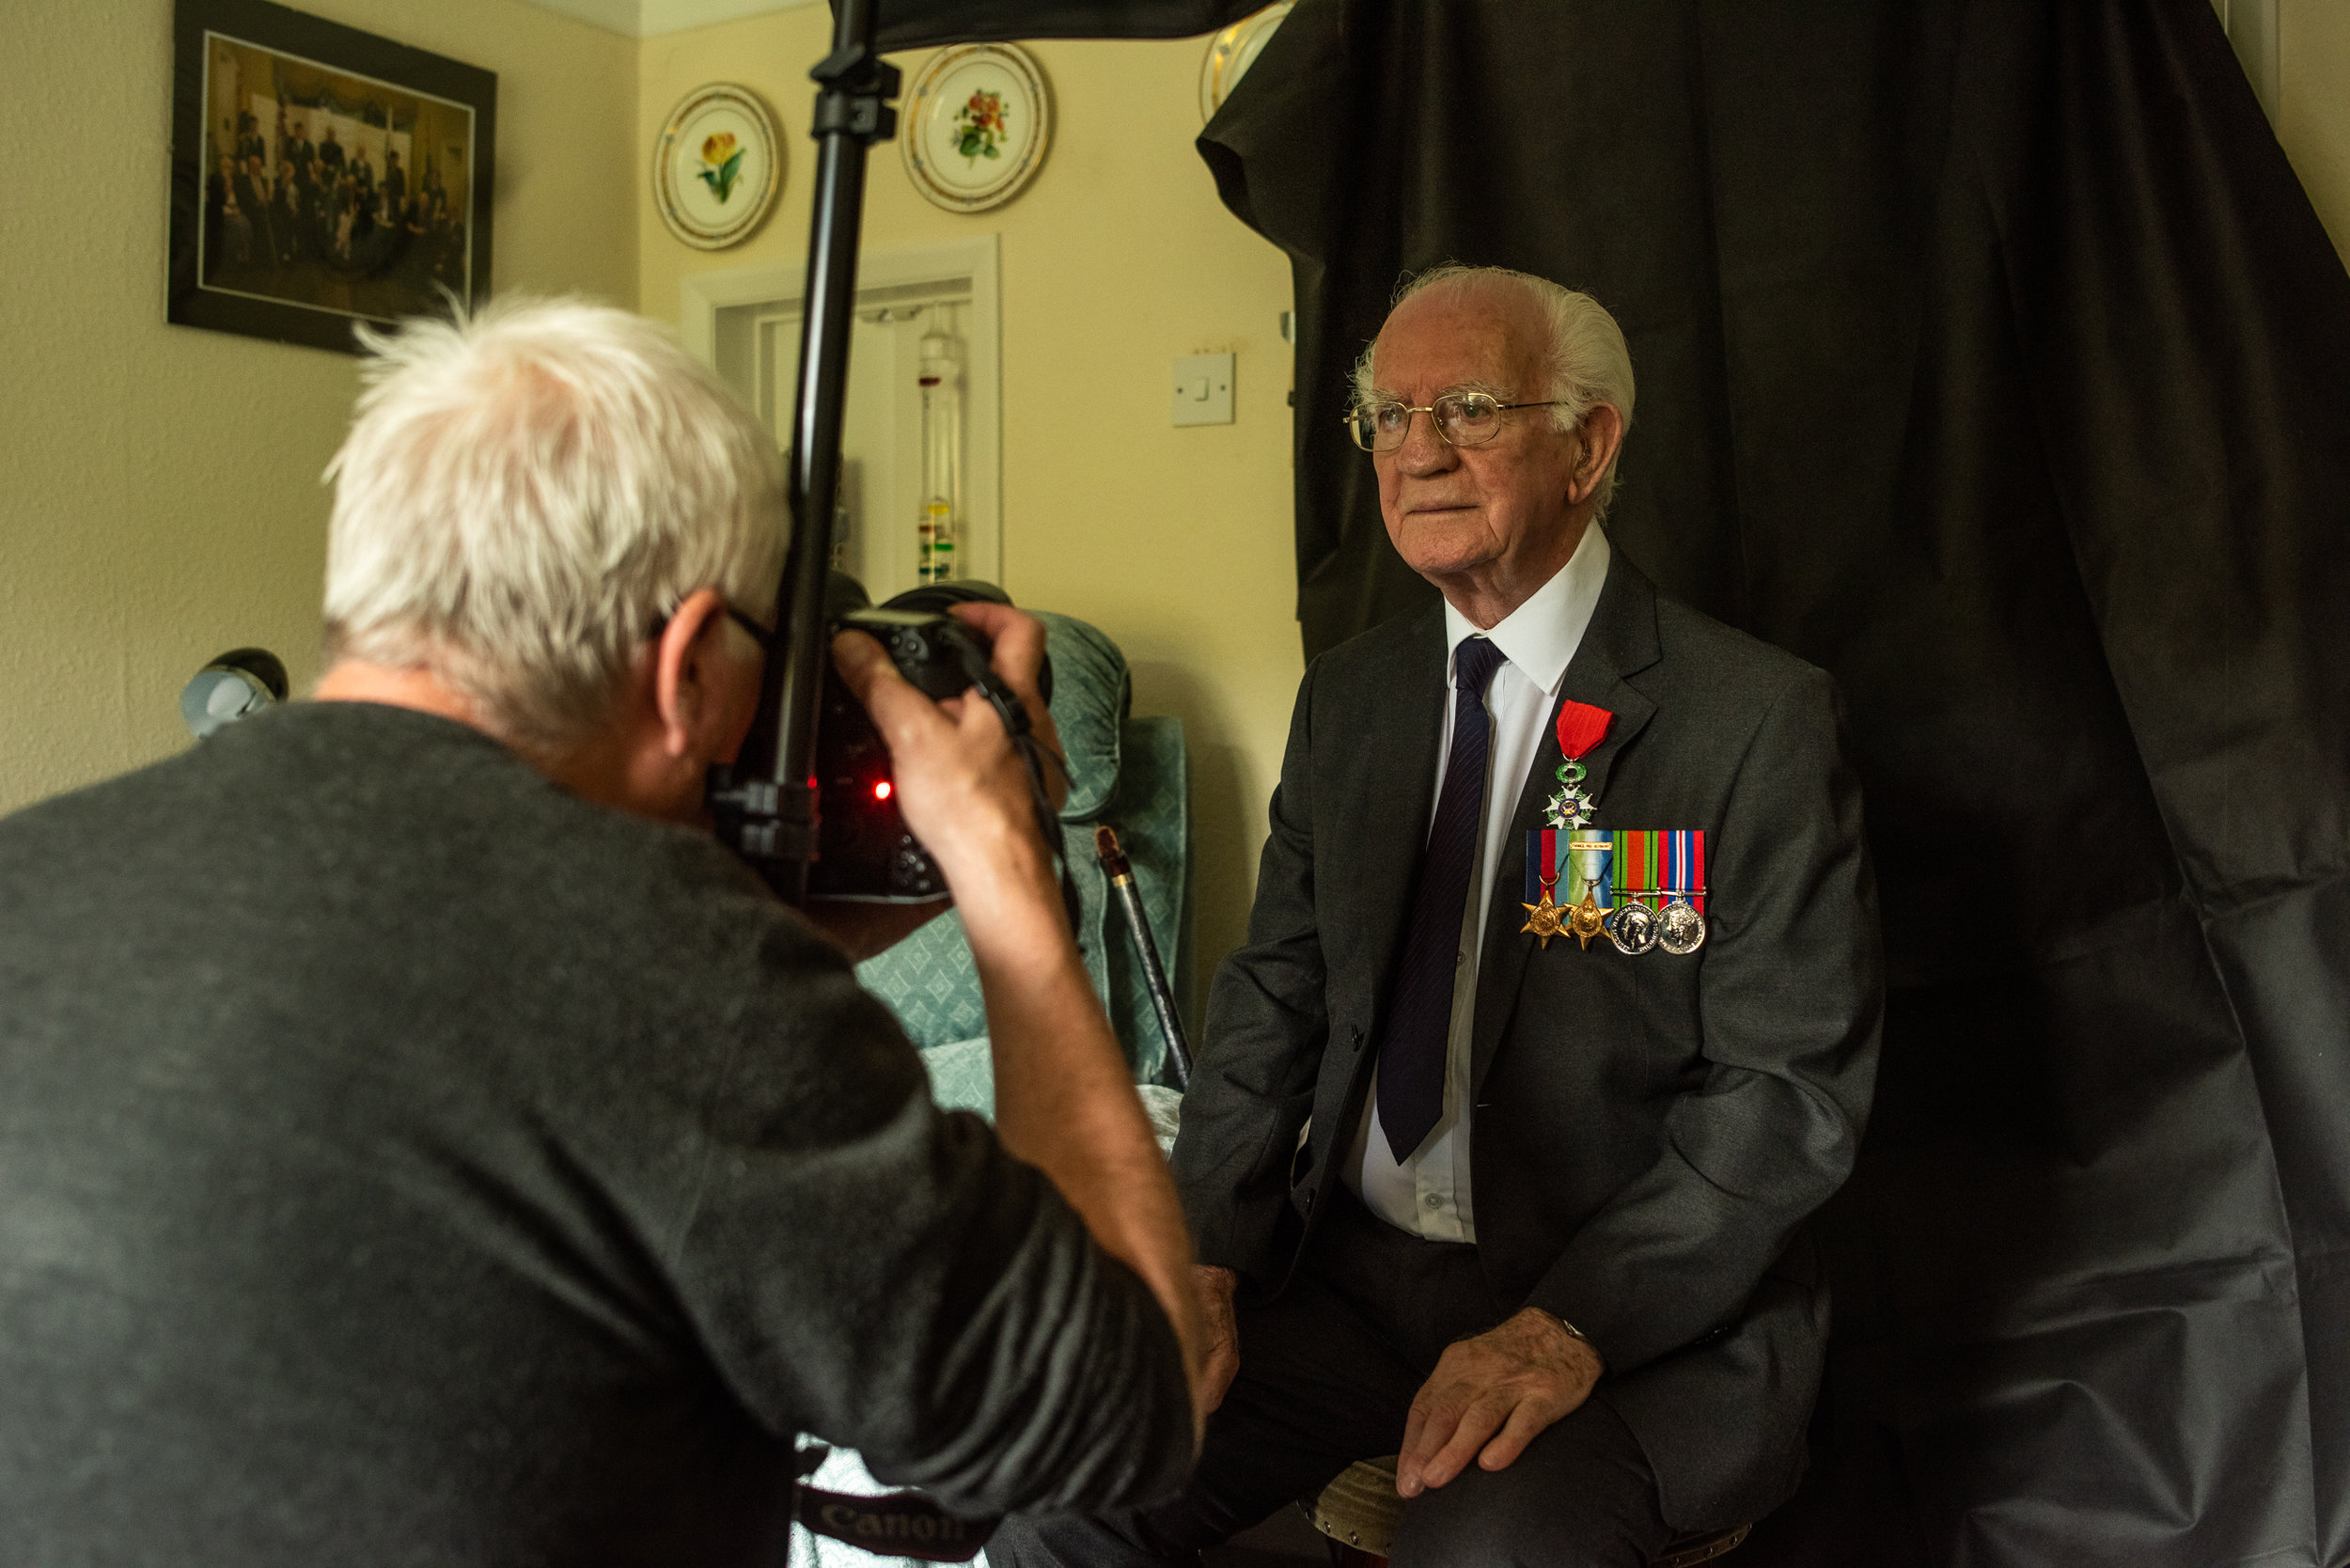 Phillip Raymond Sweet, 83, sub leftennont, was born in Stratford, went to KES and walked his daughter down the isle at Holy Trinity Church. Being photographed by local press photographer Mark Williomson for a pice on D-Day.